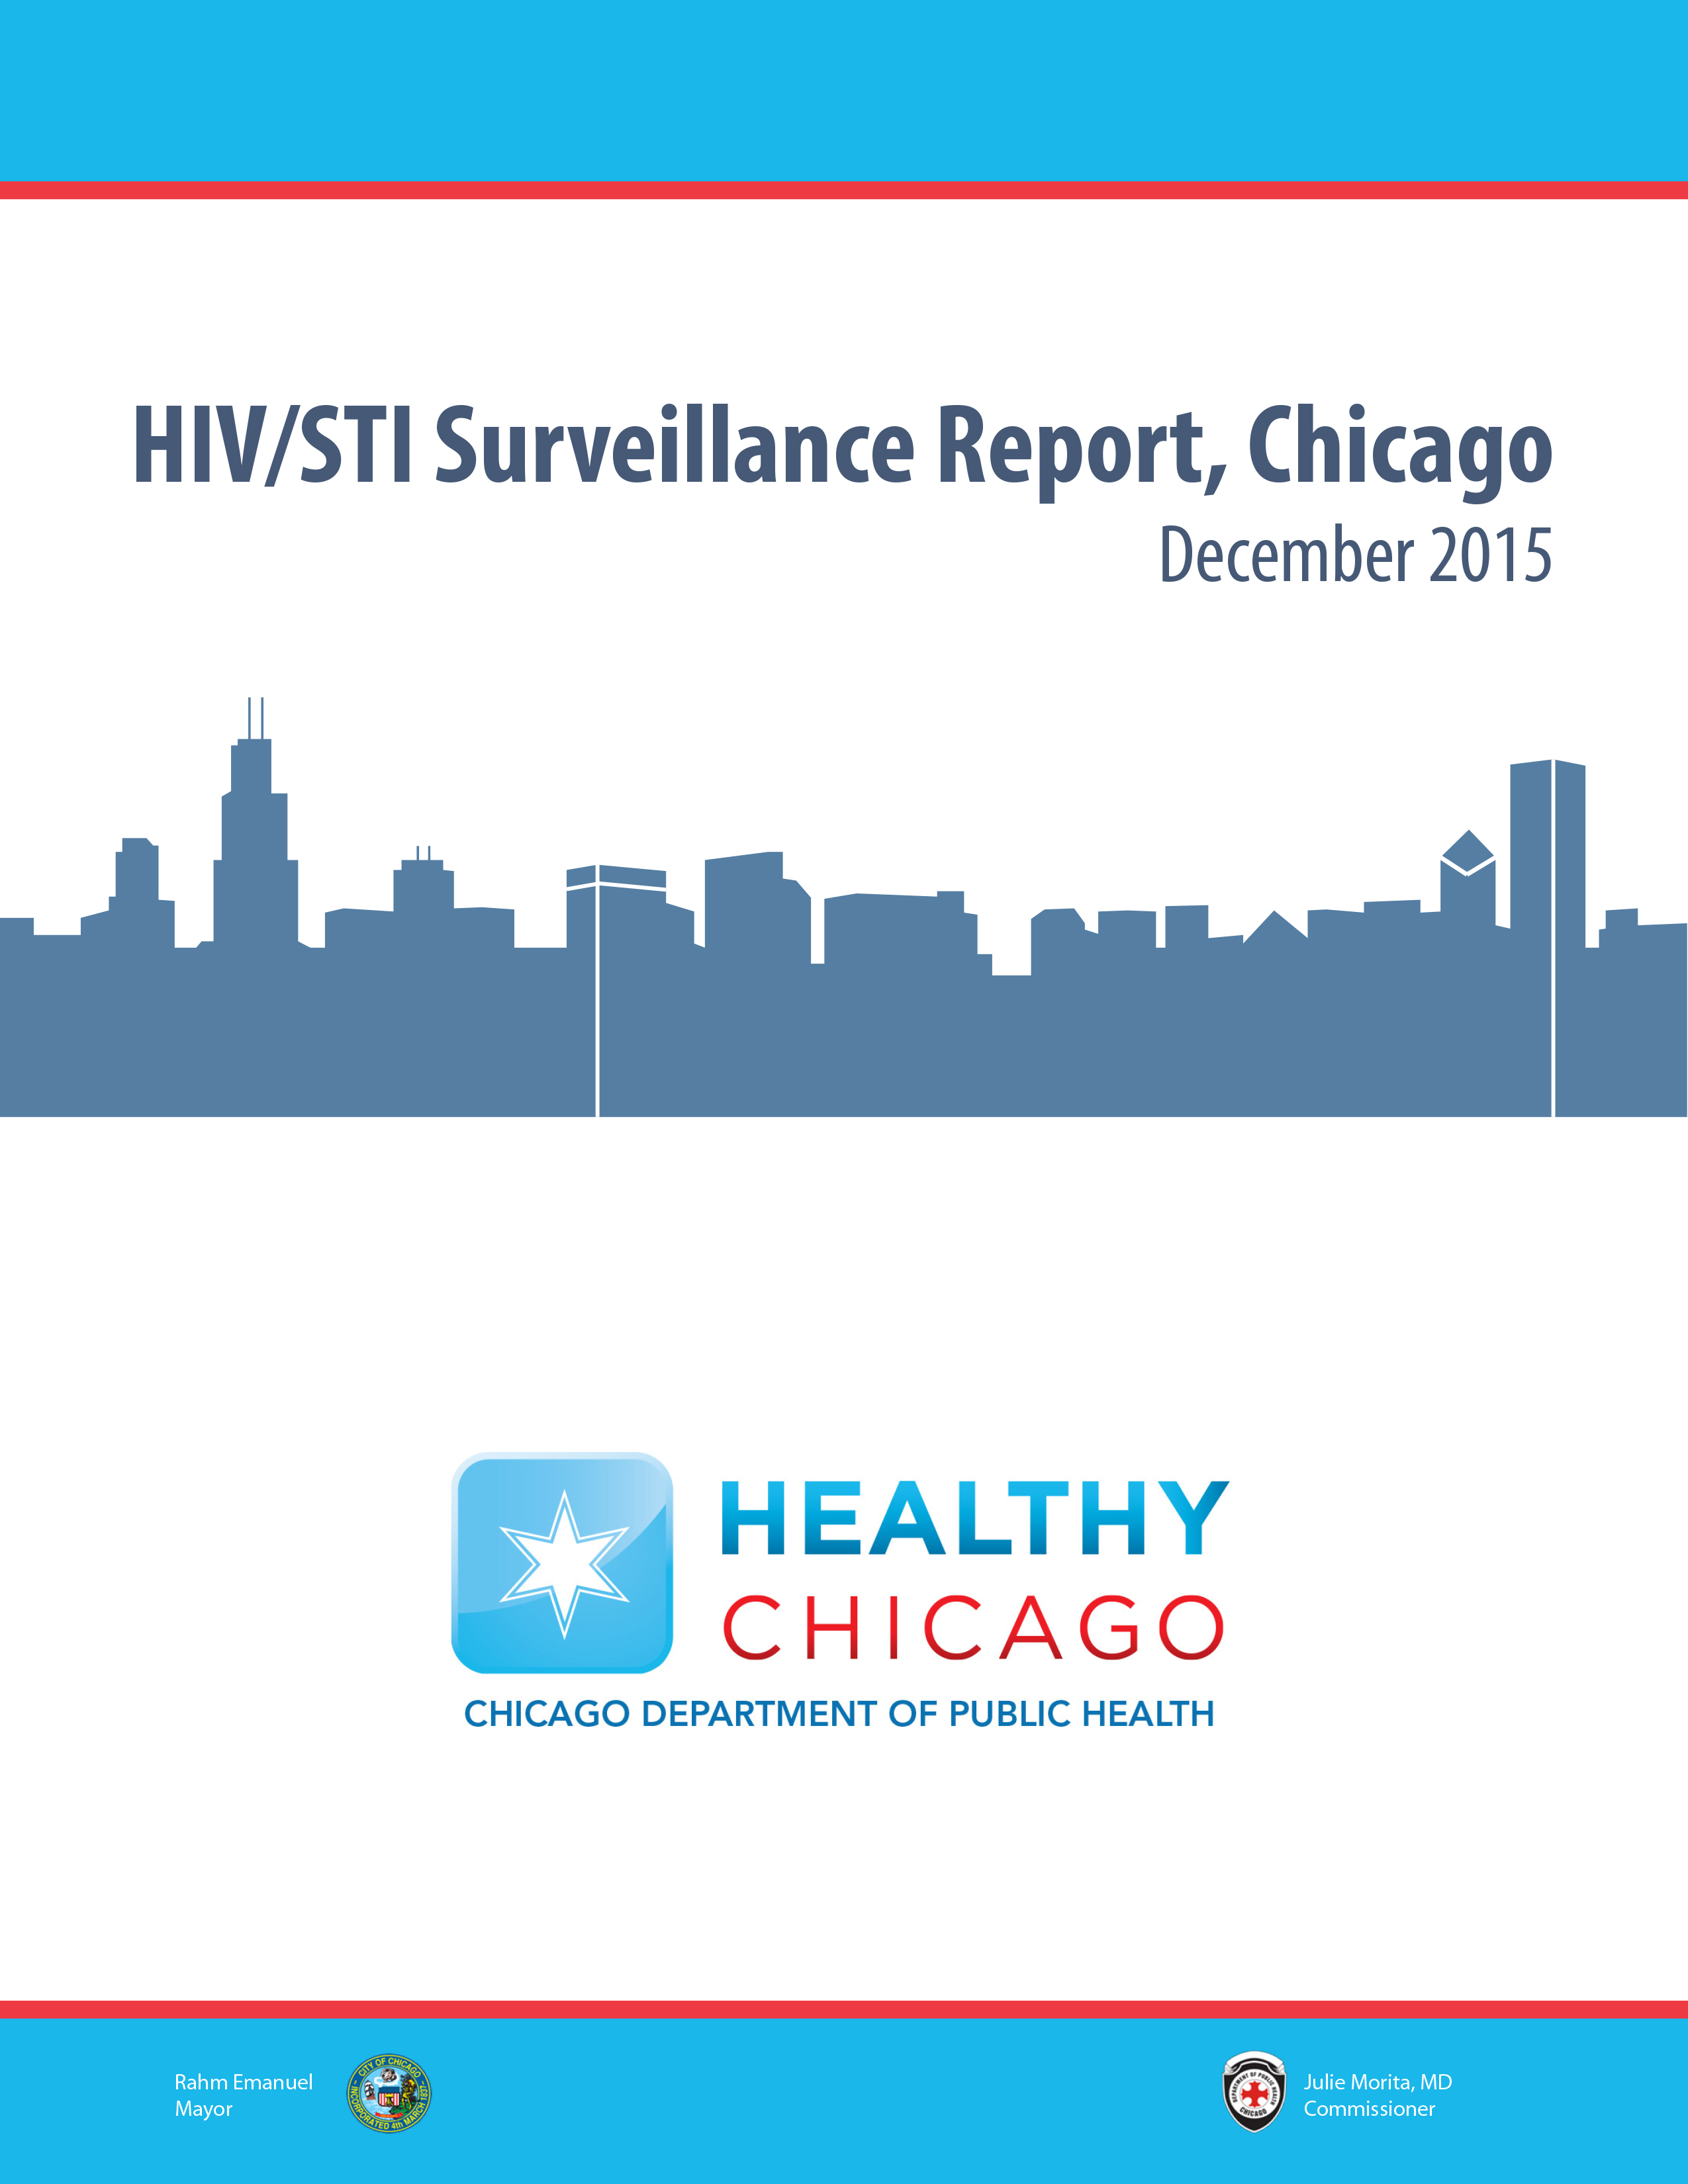 HIV STI Surveillance Report